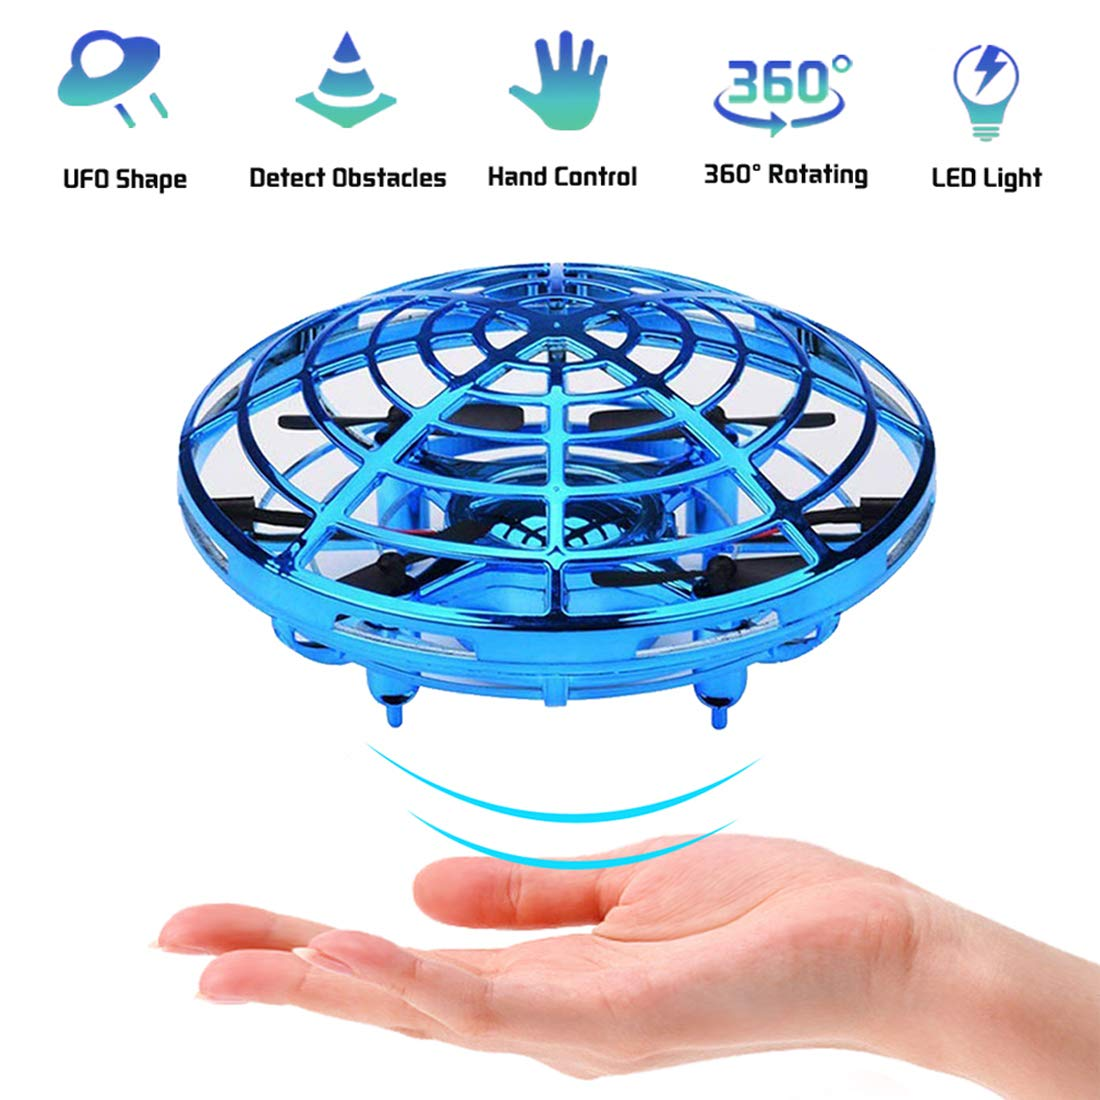 Kids Drone Toy, Flying Toys, Hand Control Drone for Kids Adults, Mini Flying Ball Helicopter with LED Light, Indoor Small Orb Flying Ball Drone Toys Gift for Boys or Girls, 360° Rotating Fun UFO Hover